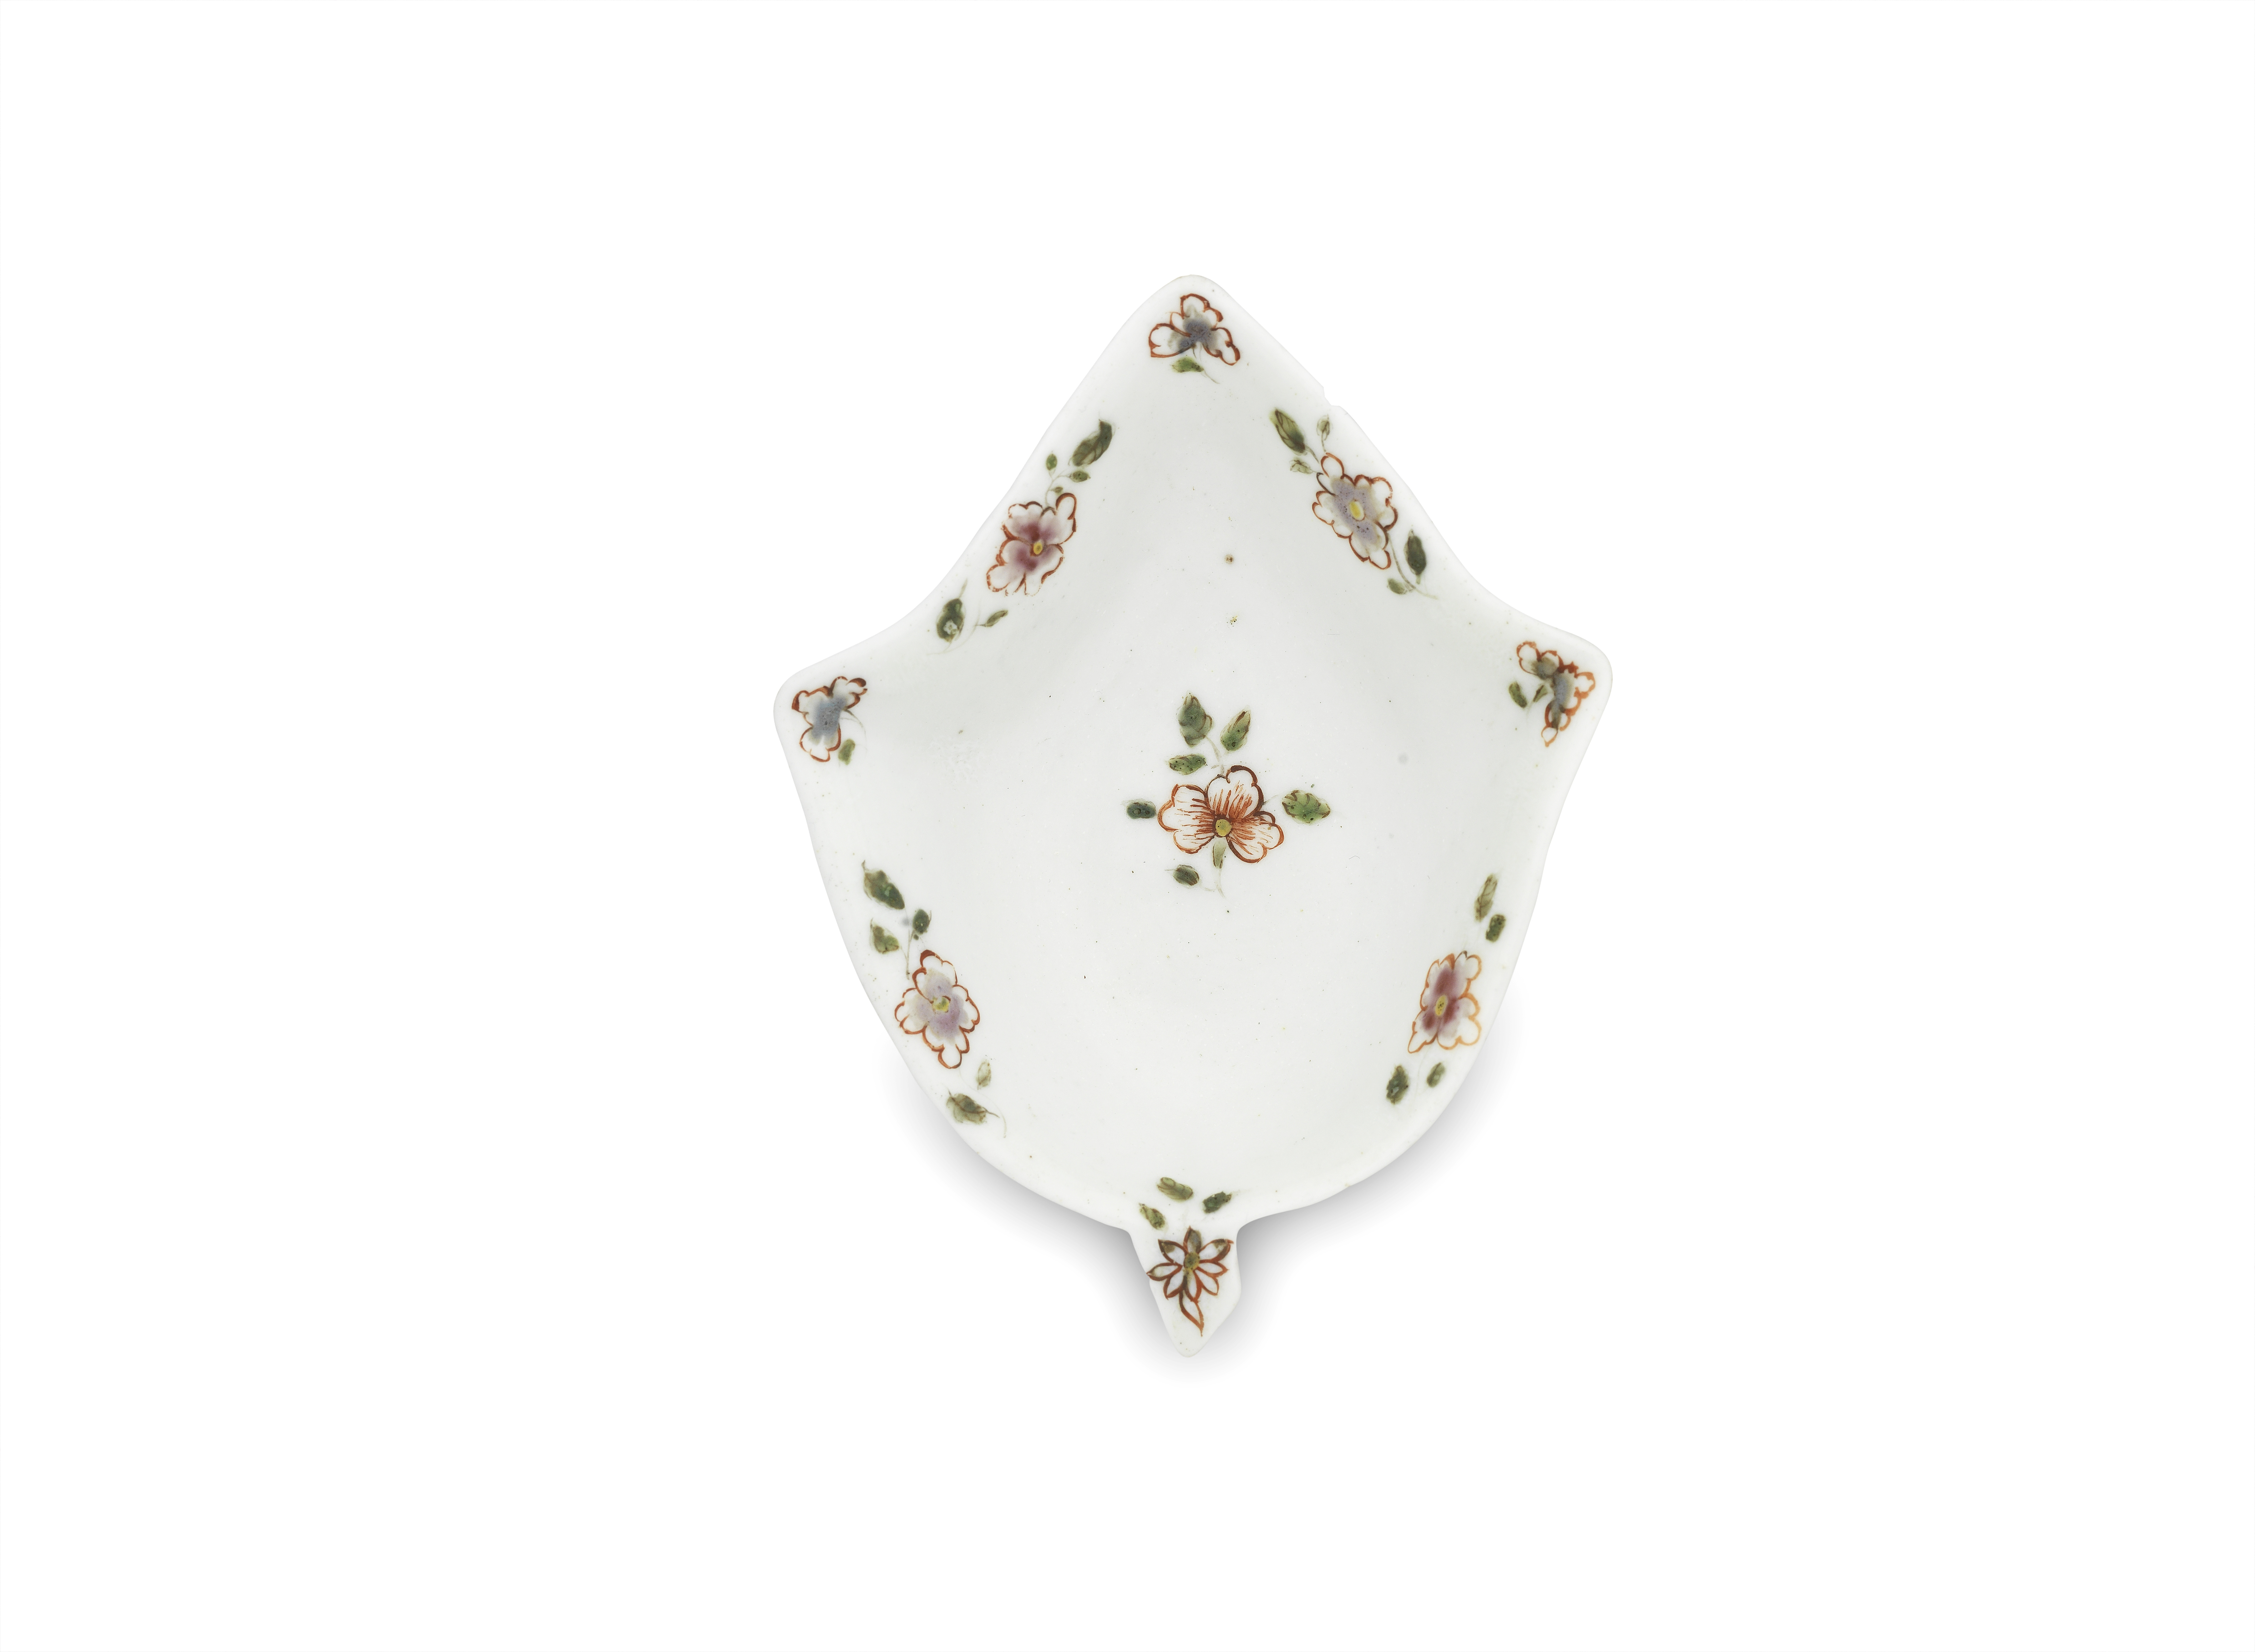 An early Worcester pickle dish, circa 1752-53